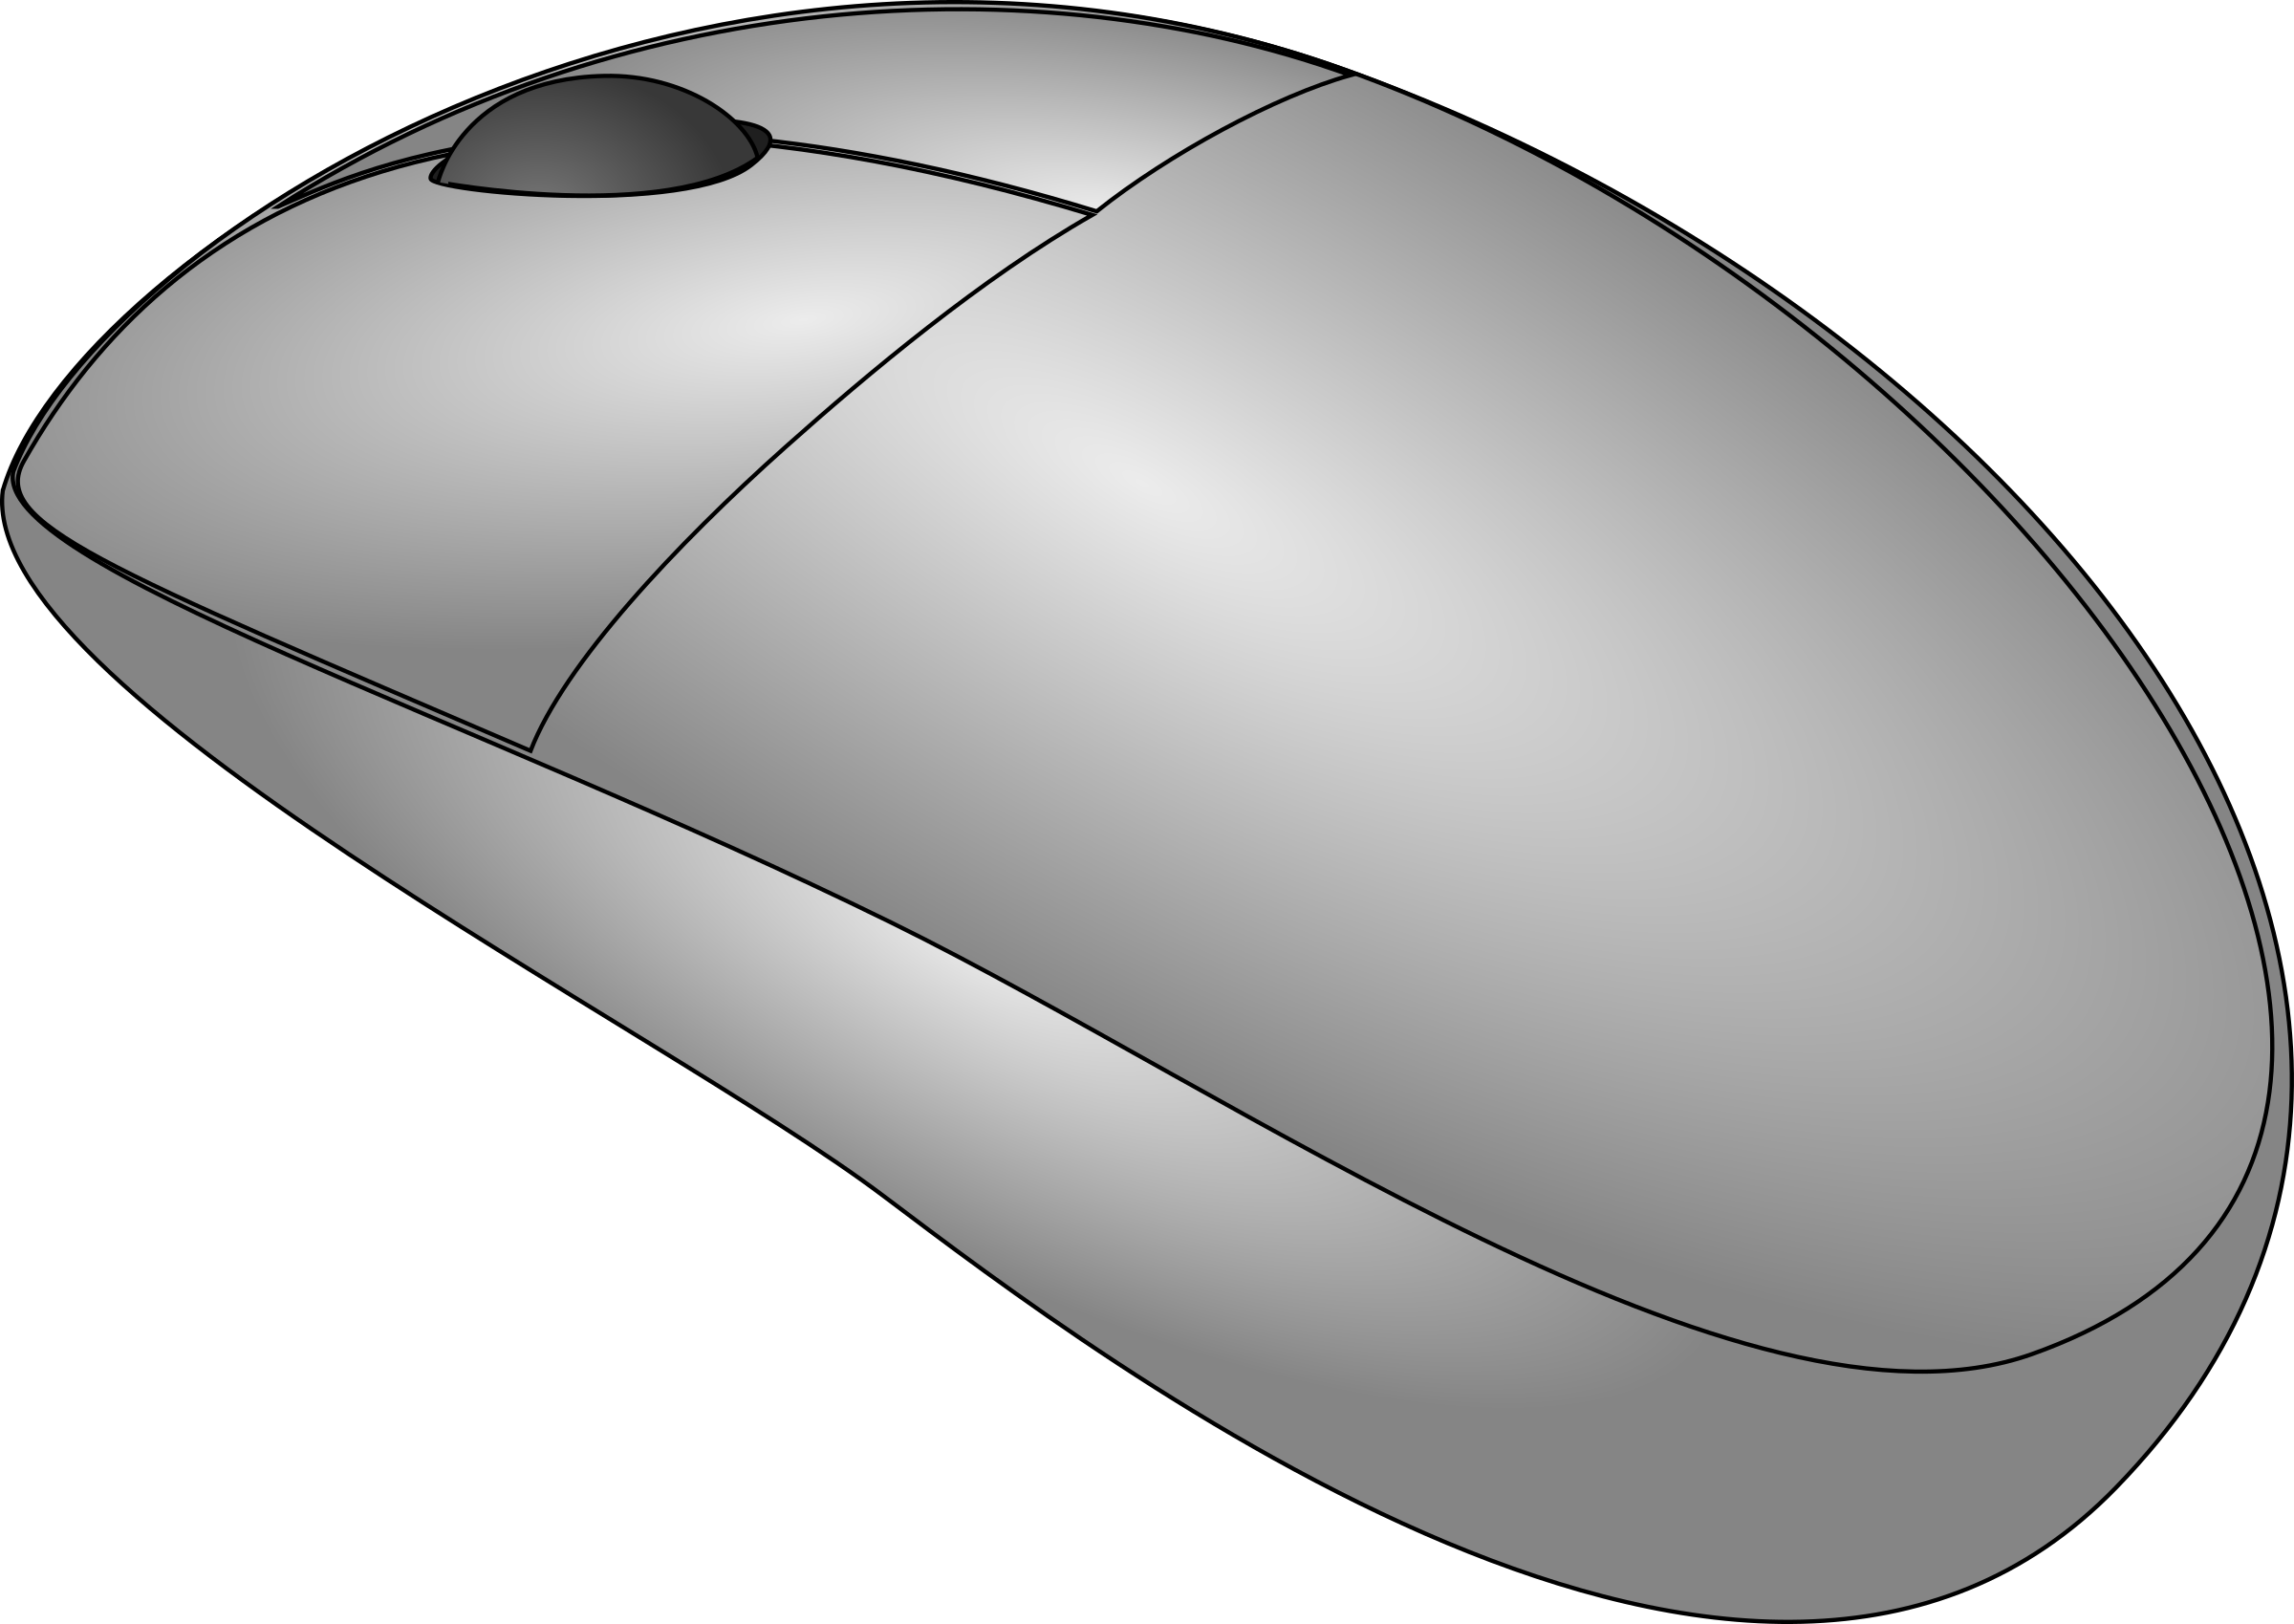 Clipart images computer mouse.